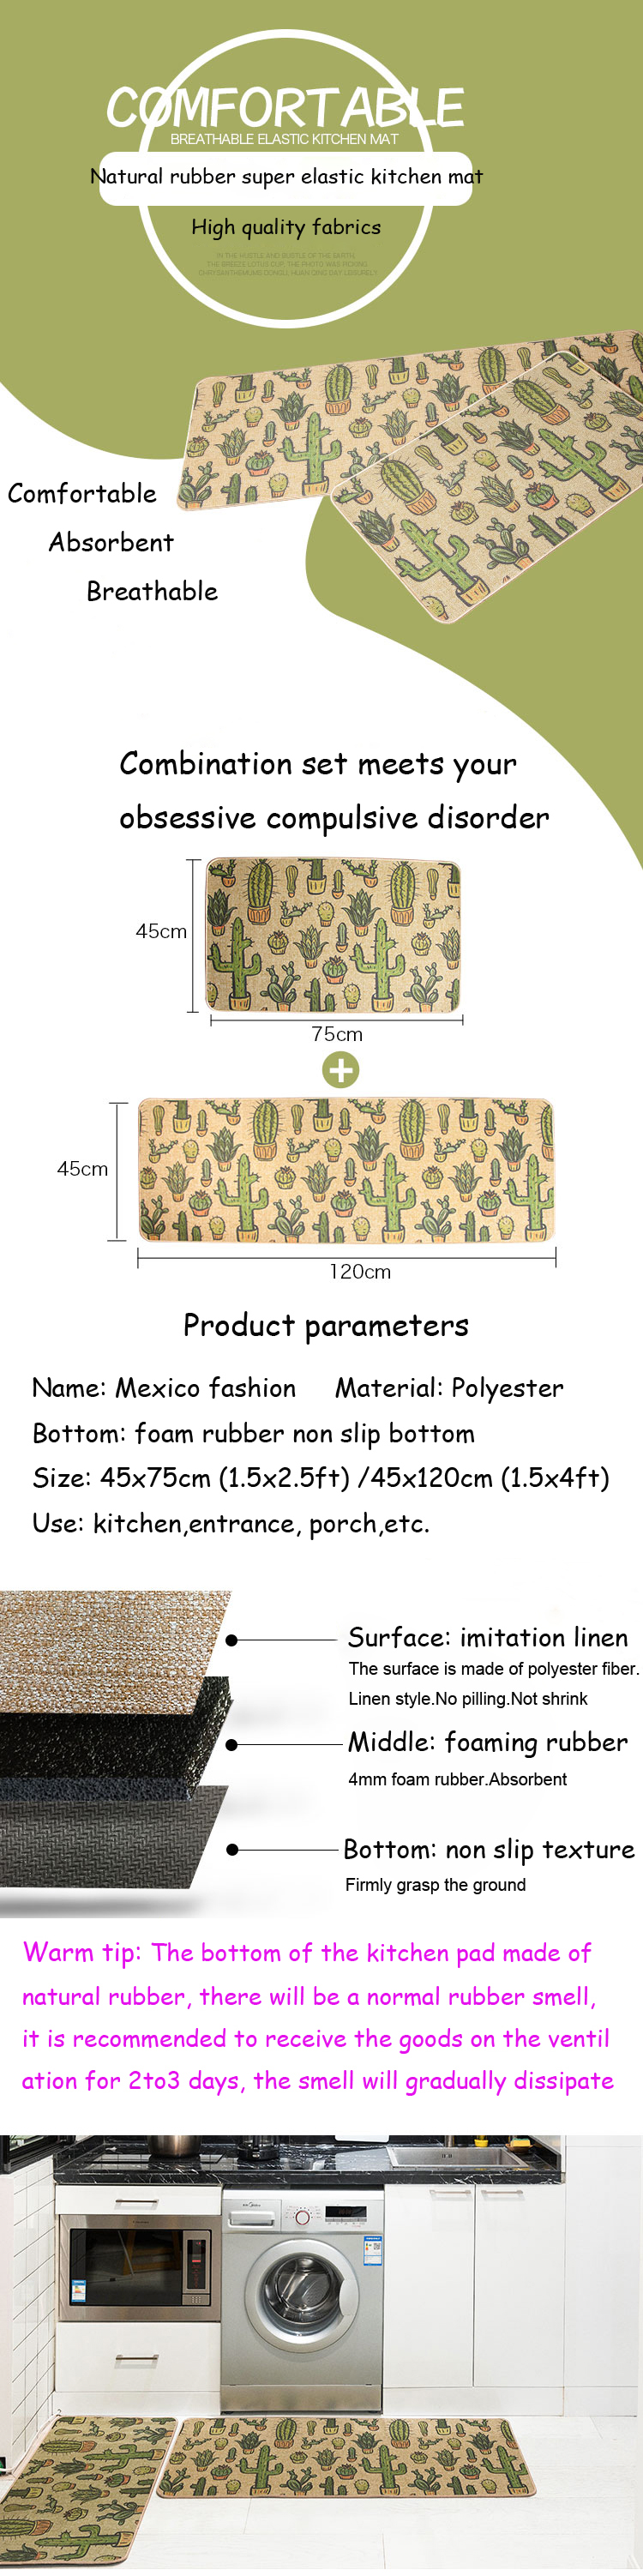 Natural rubber back cactus kitchen rug sets mat oil proof waterproof natural rubber back cactus kitchen rug sets mat oil proof waterproof anti pollution non skid imitation linen cloth design carpet us518 fandeluxe Choice Image